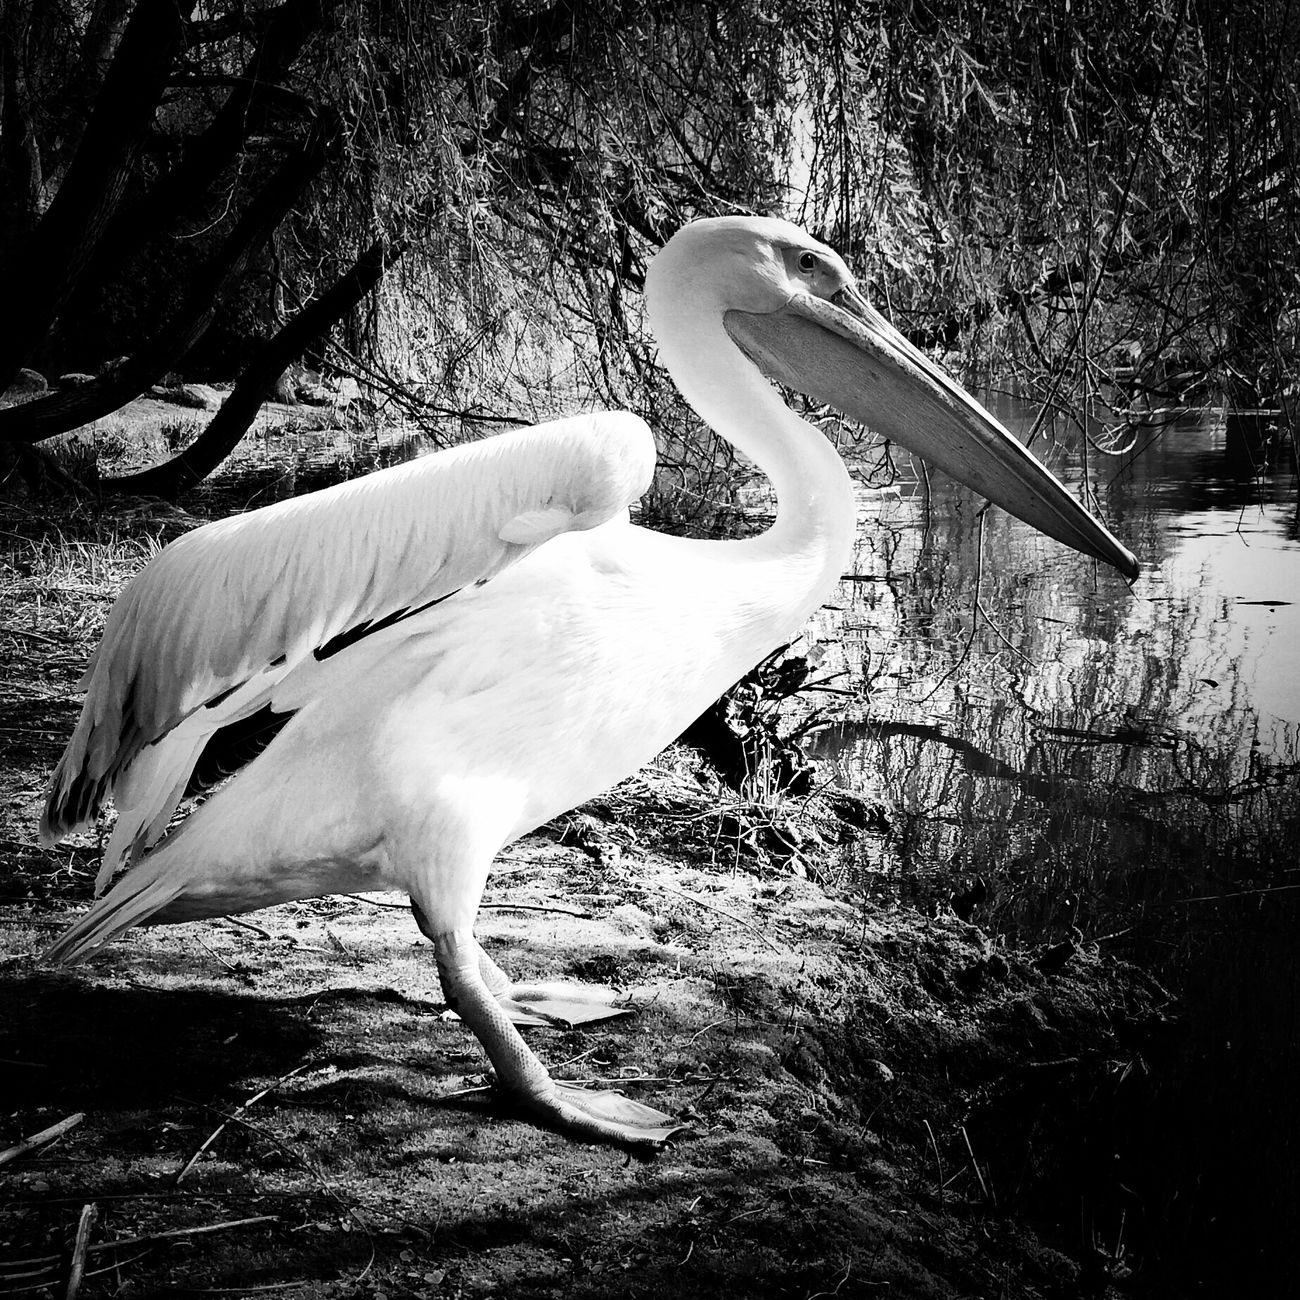 pelican in contrast Blackandwhite Tadaa Community EyeEm Nature Lover Birds